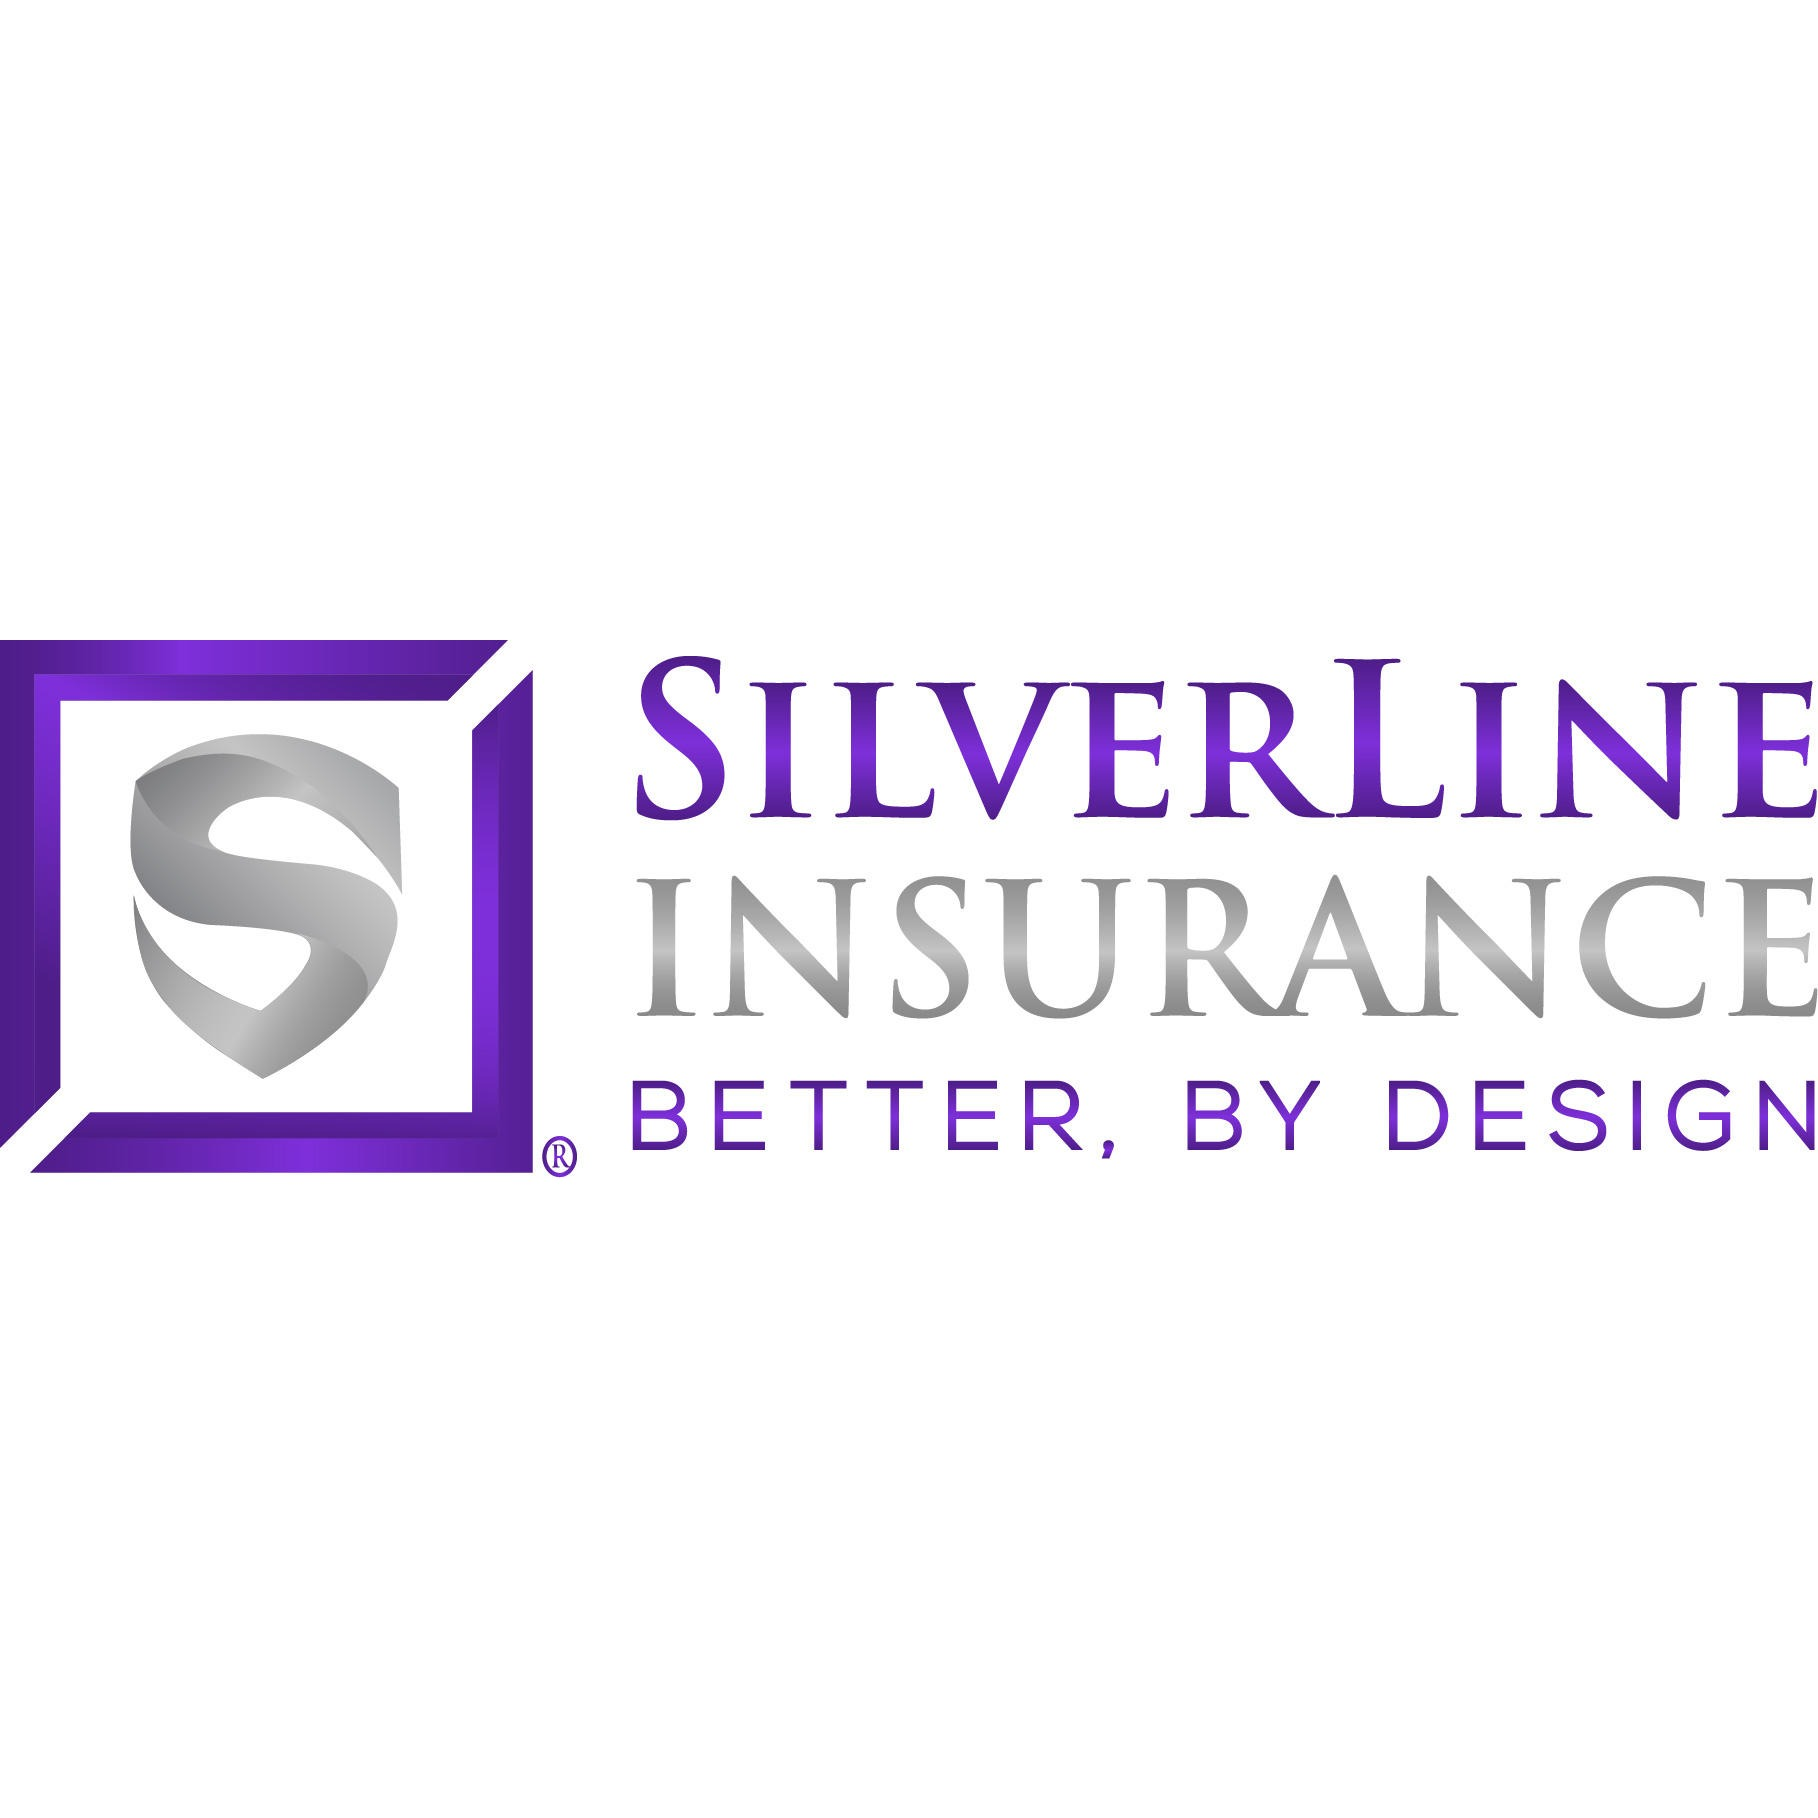 S Shield logo and Silverline Insurance better by design wording